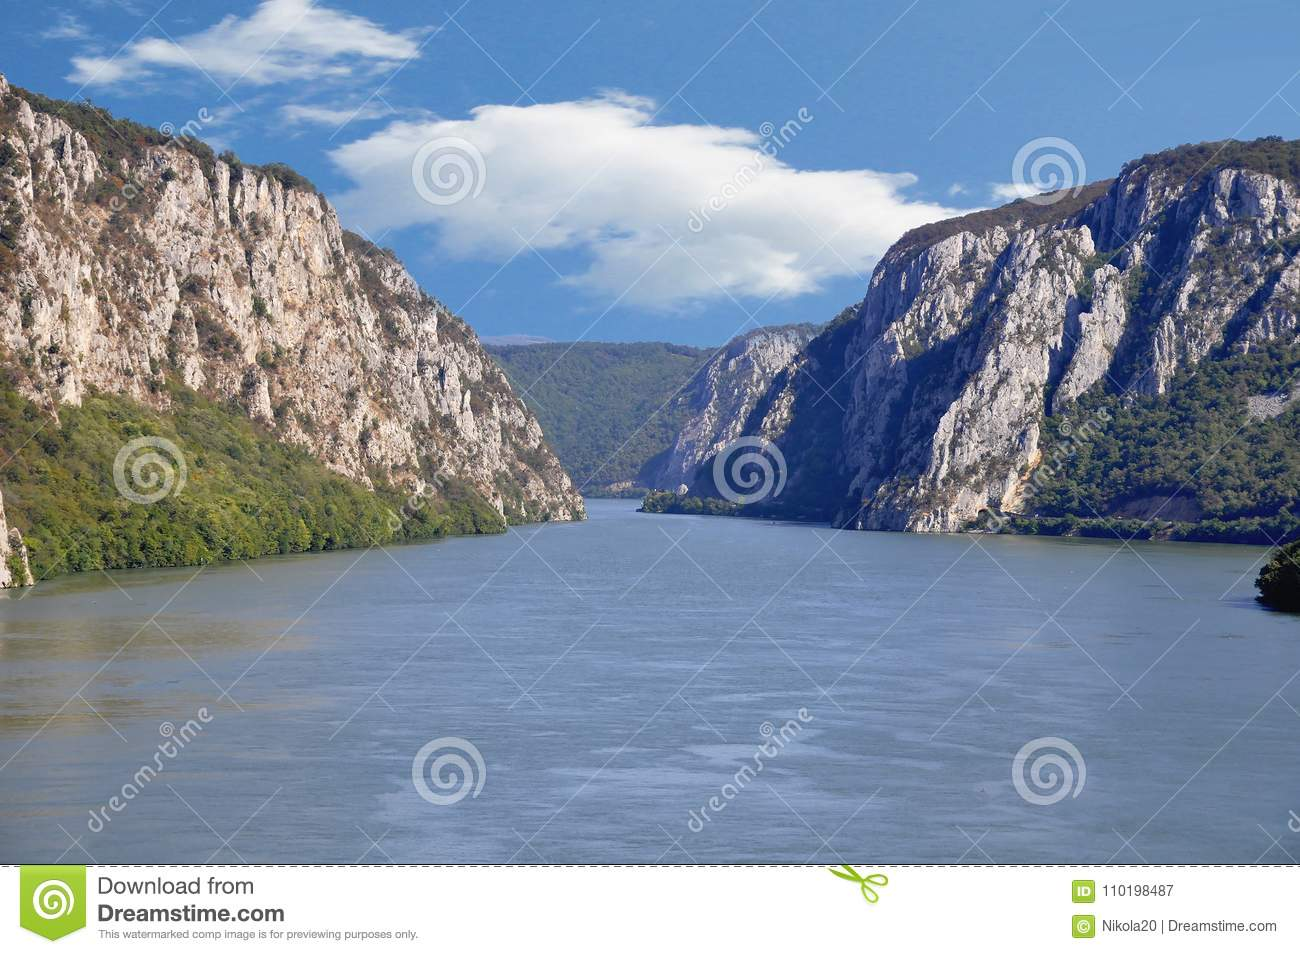 Danube river near the Serbian city of Donji Milanovac.